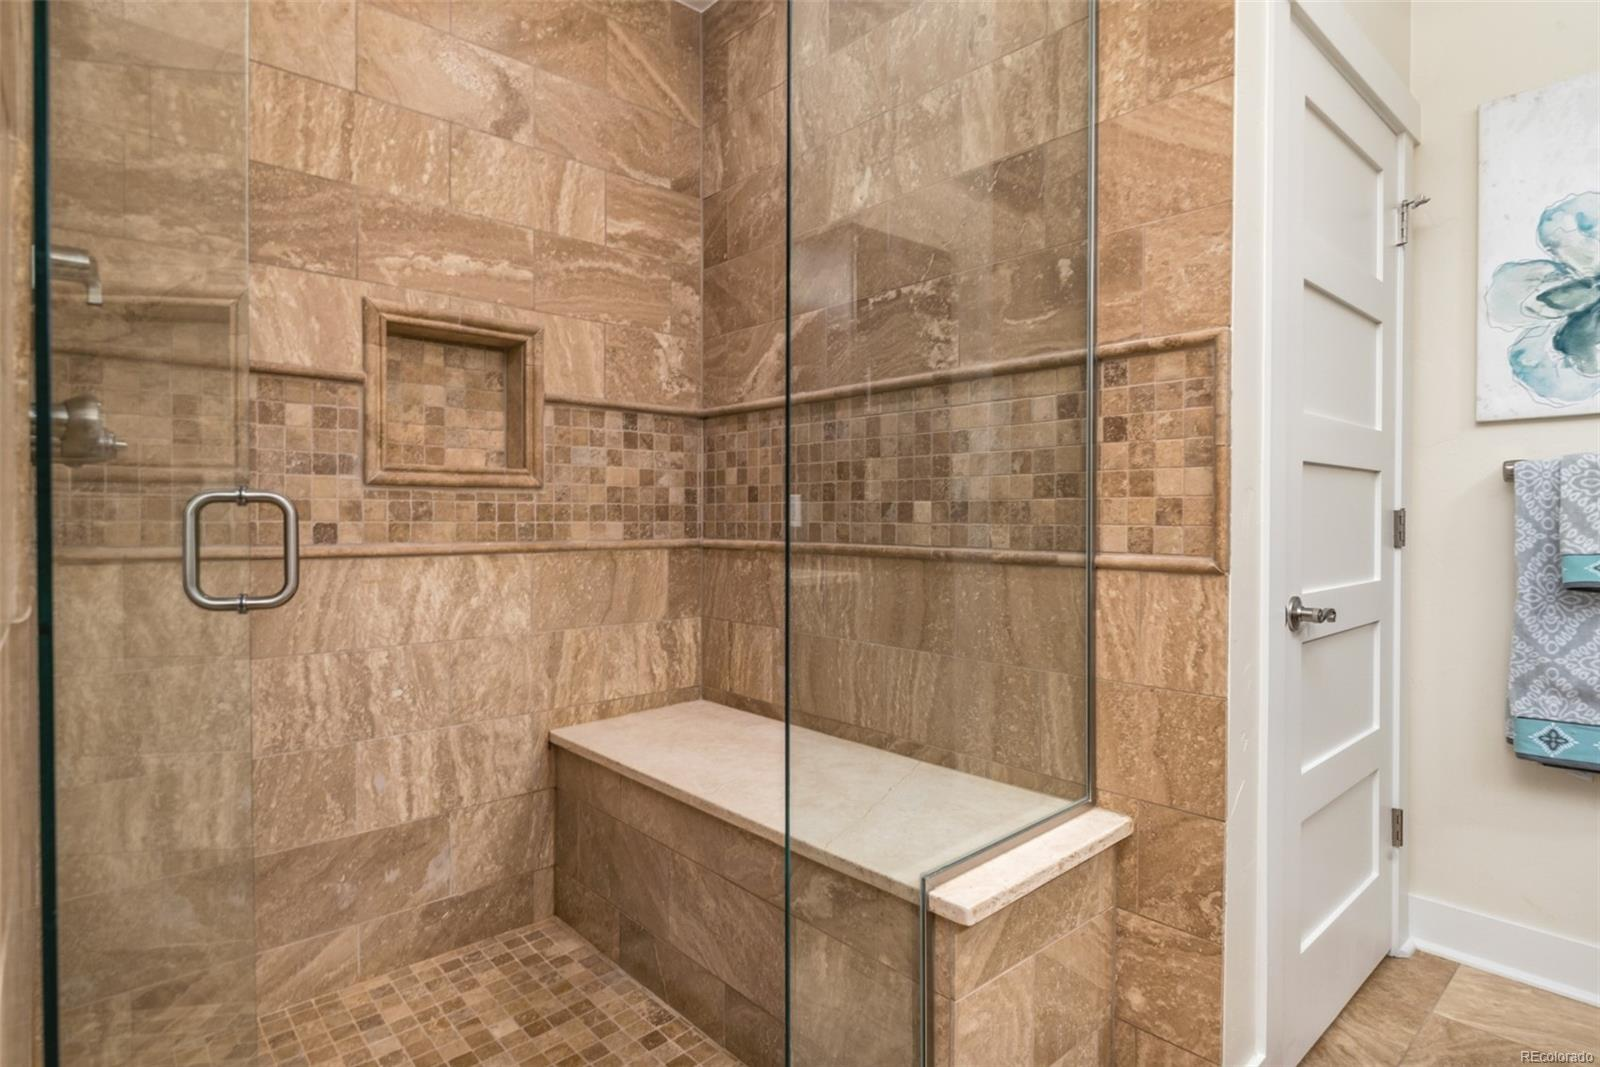 CUSTOM TILE & FRAMELESS SHOWER ENCLOSURE!